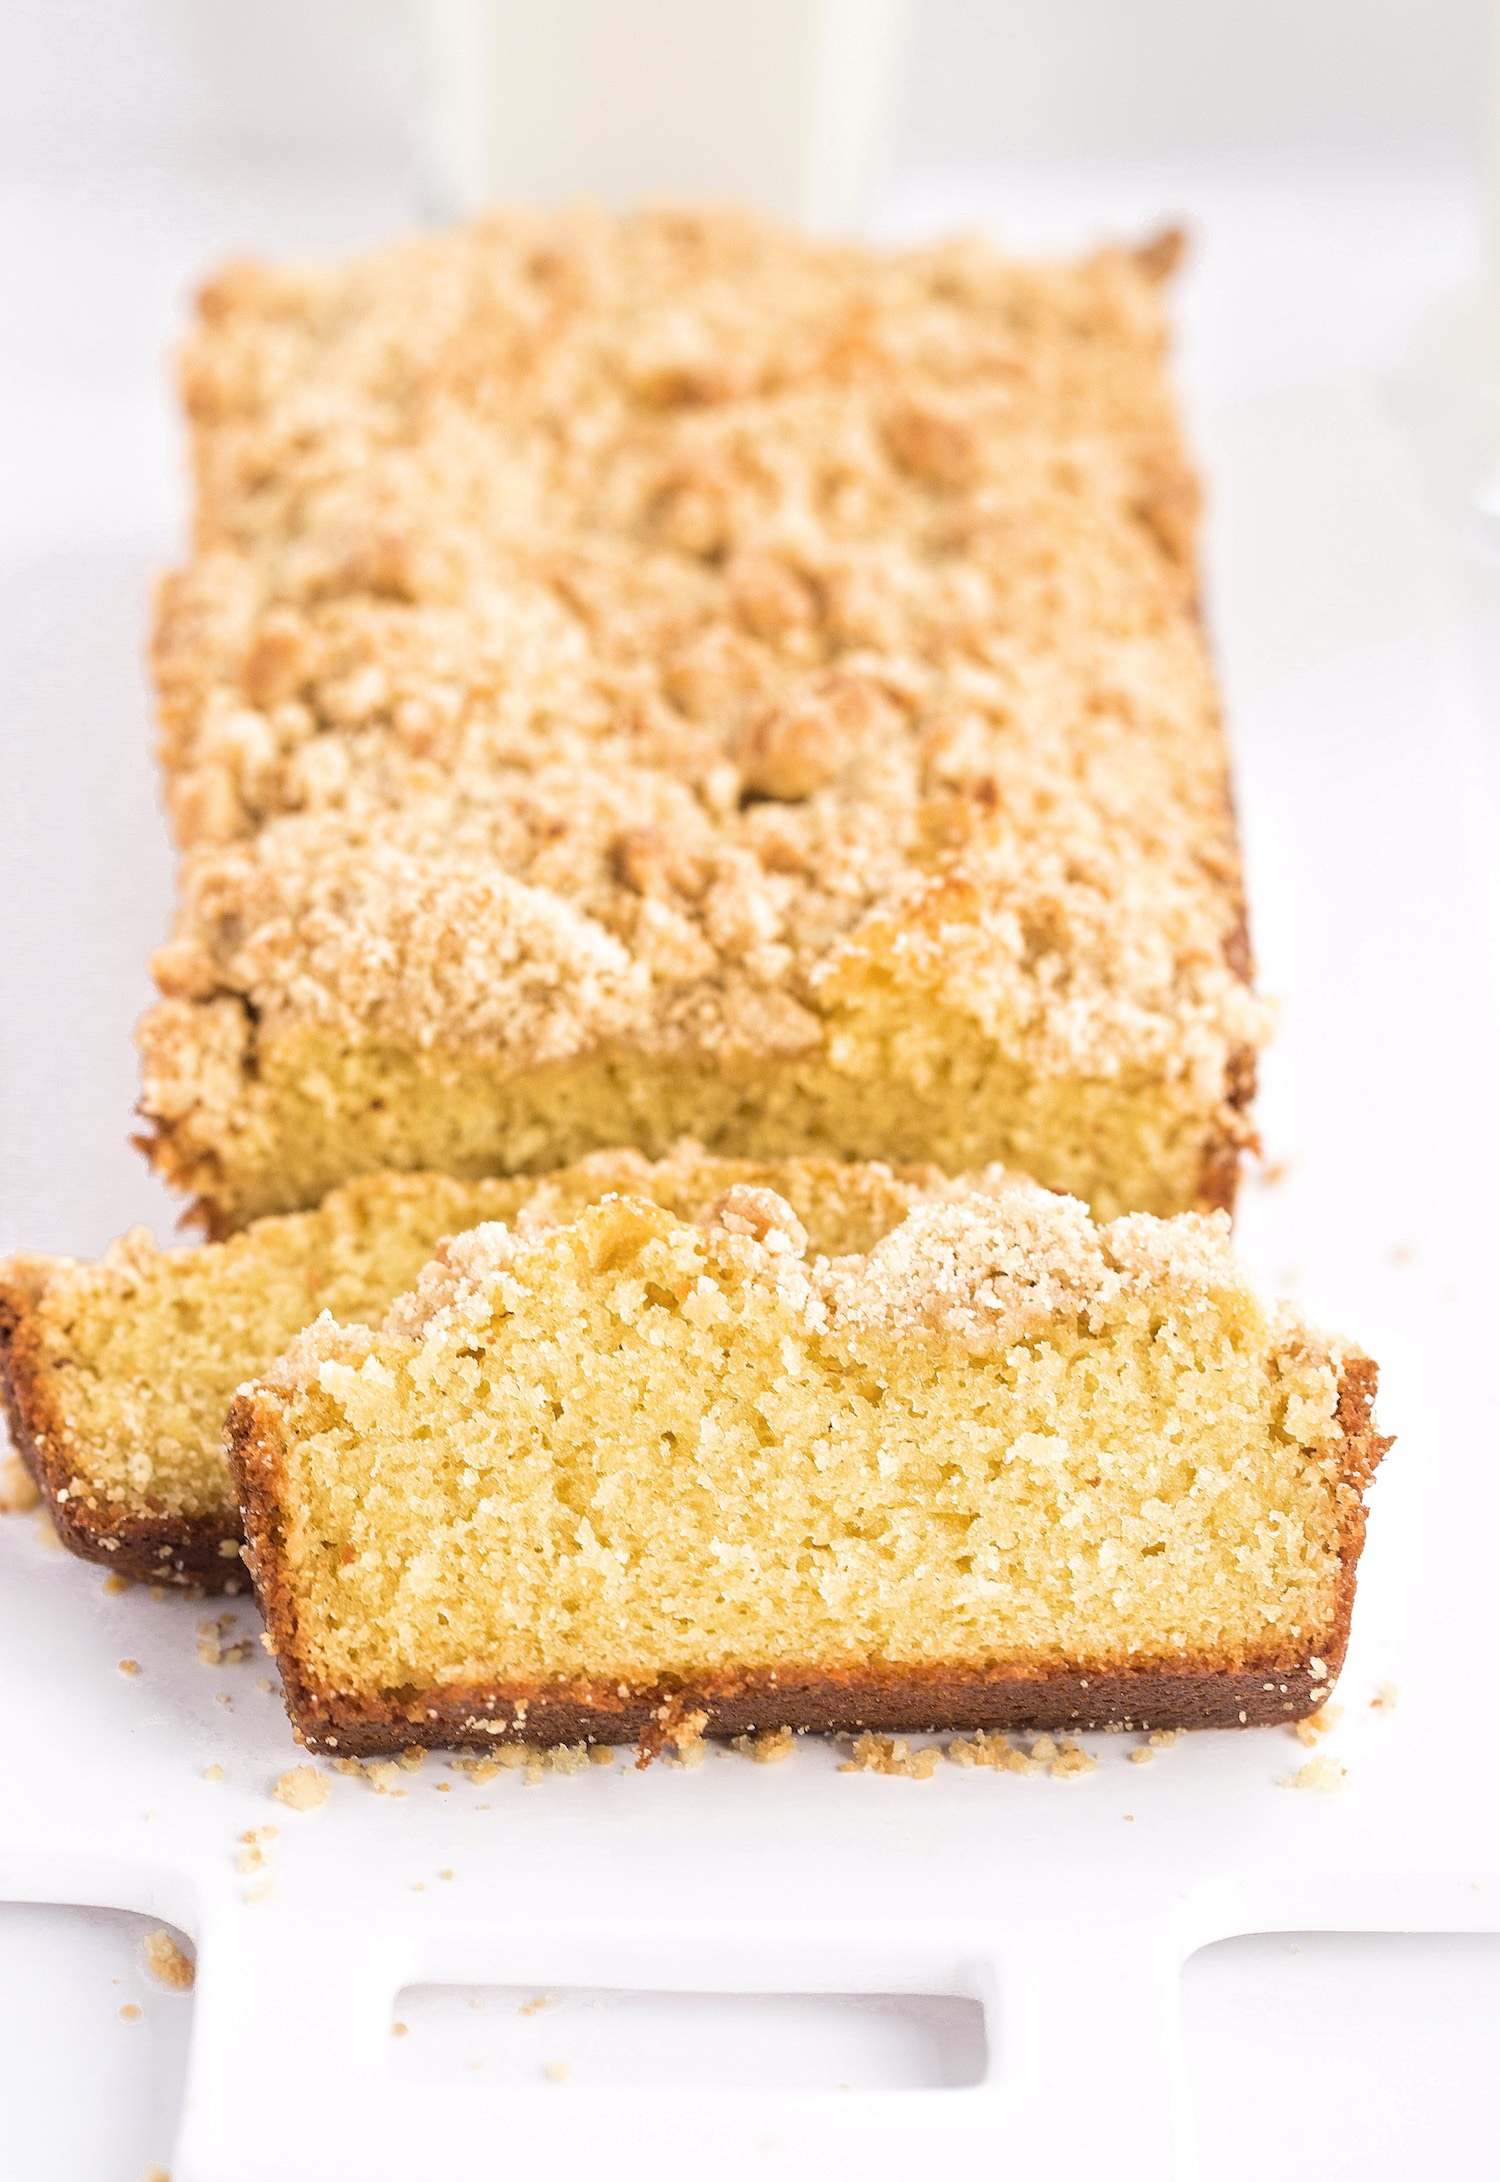 ]Fluffy Butter Streusel Loaf Cake: this loaf cake is rich and flavorful like a butter cake yet fluffy like a yellow cake. Topped generously with a tasty streusel! | TrufflesandTrends.com